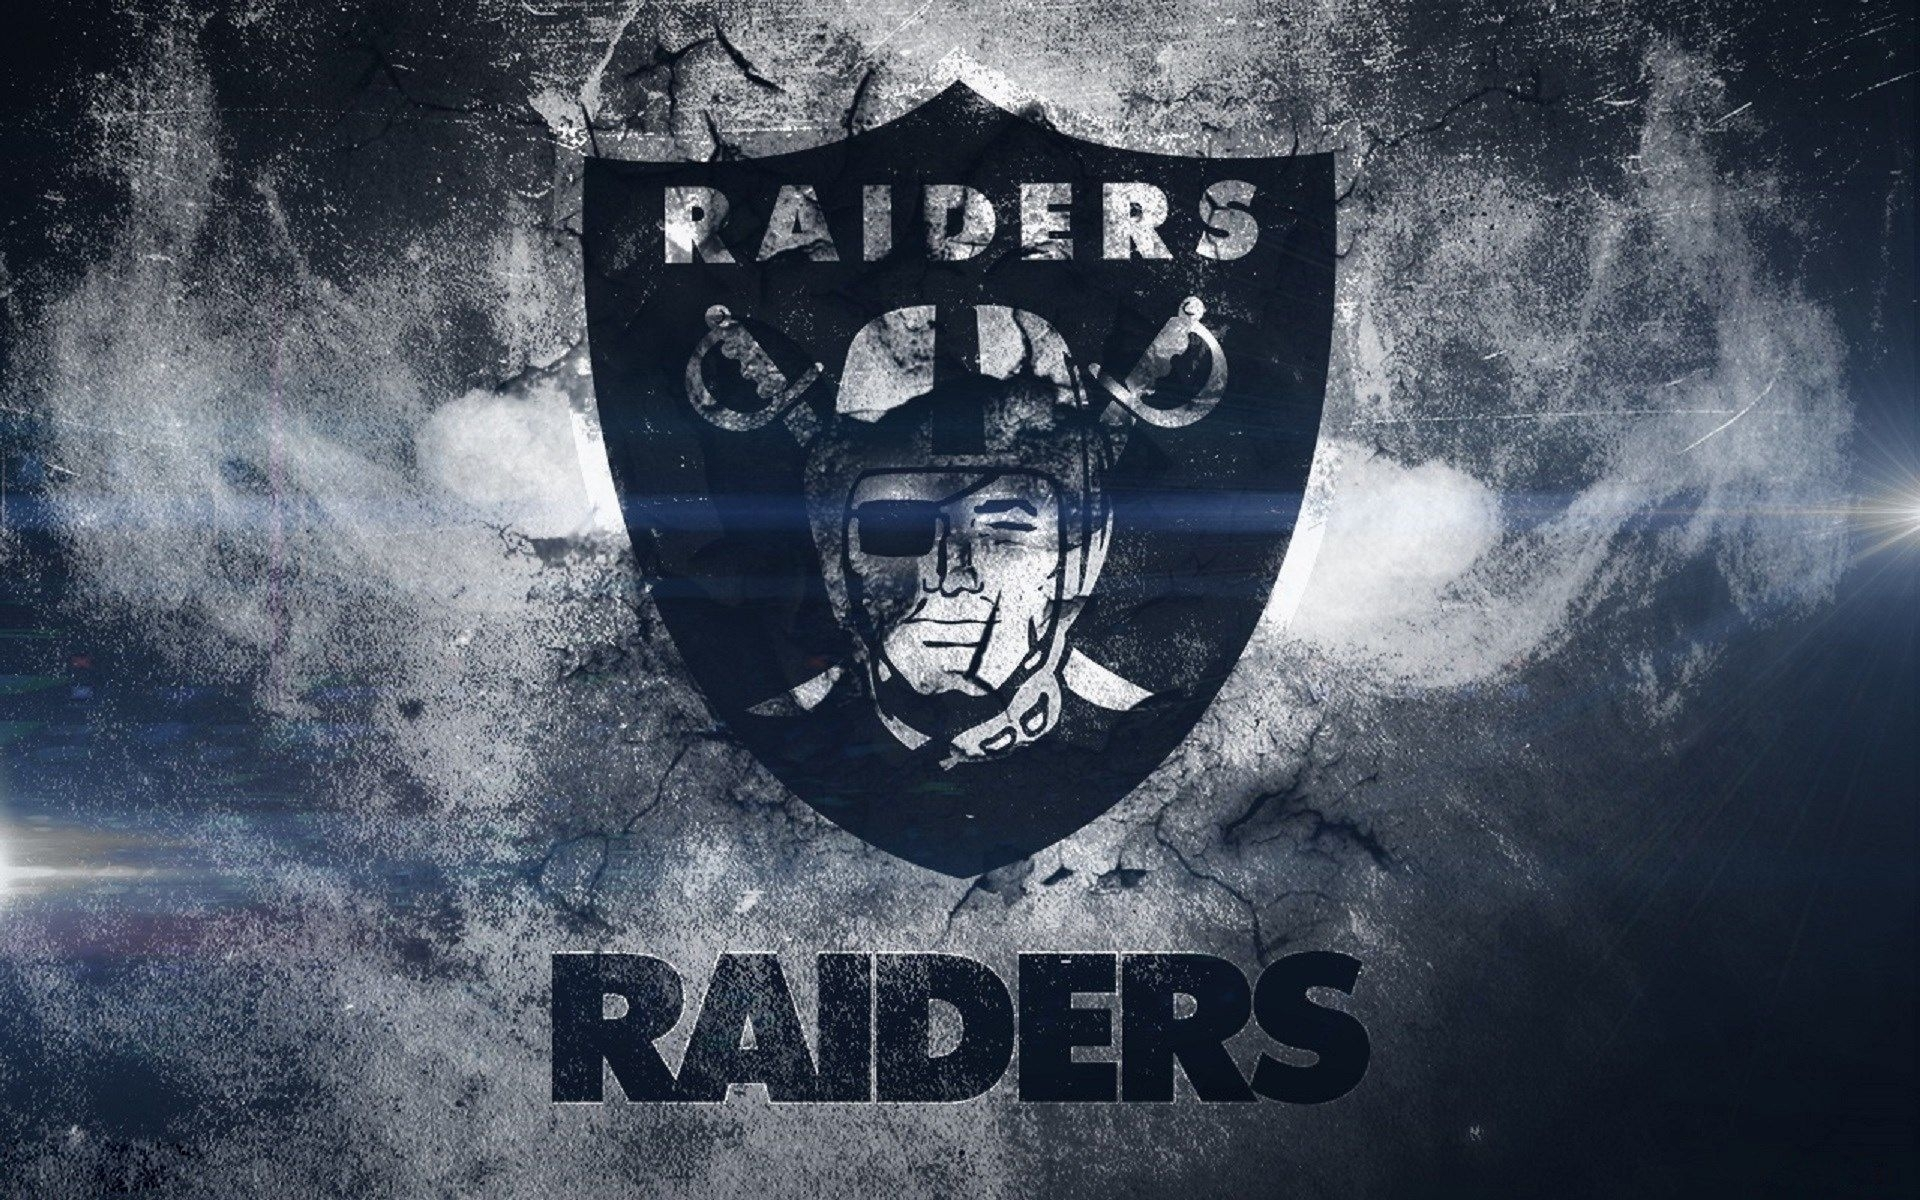 oakland raiders wallpaper hd download | sharovarka | pinterest